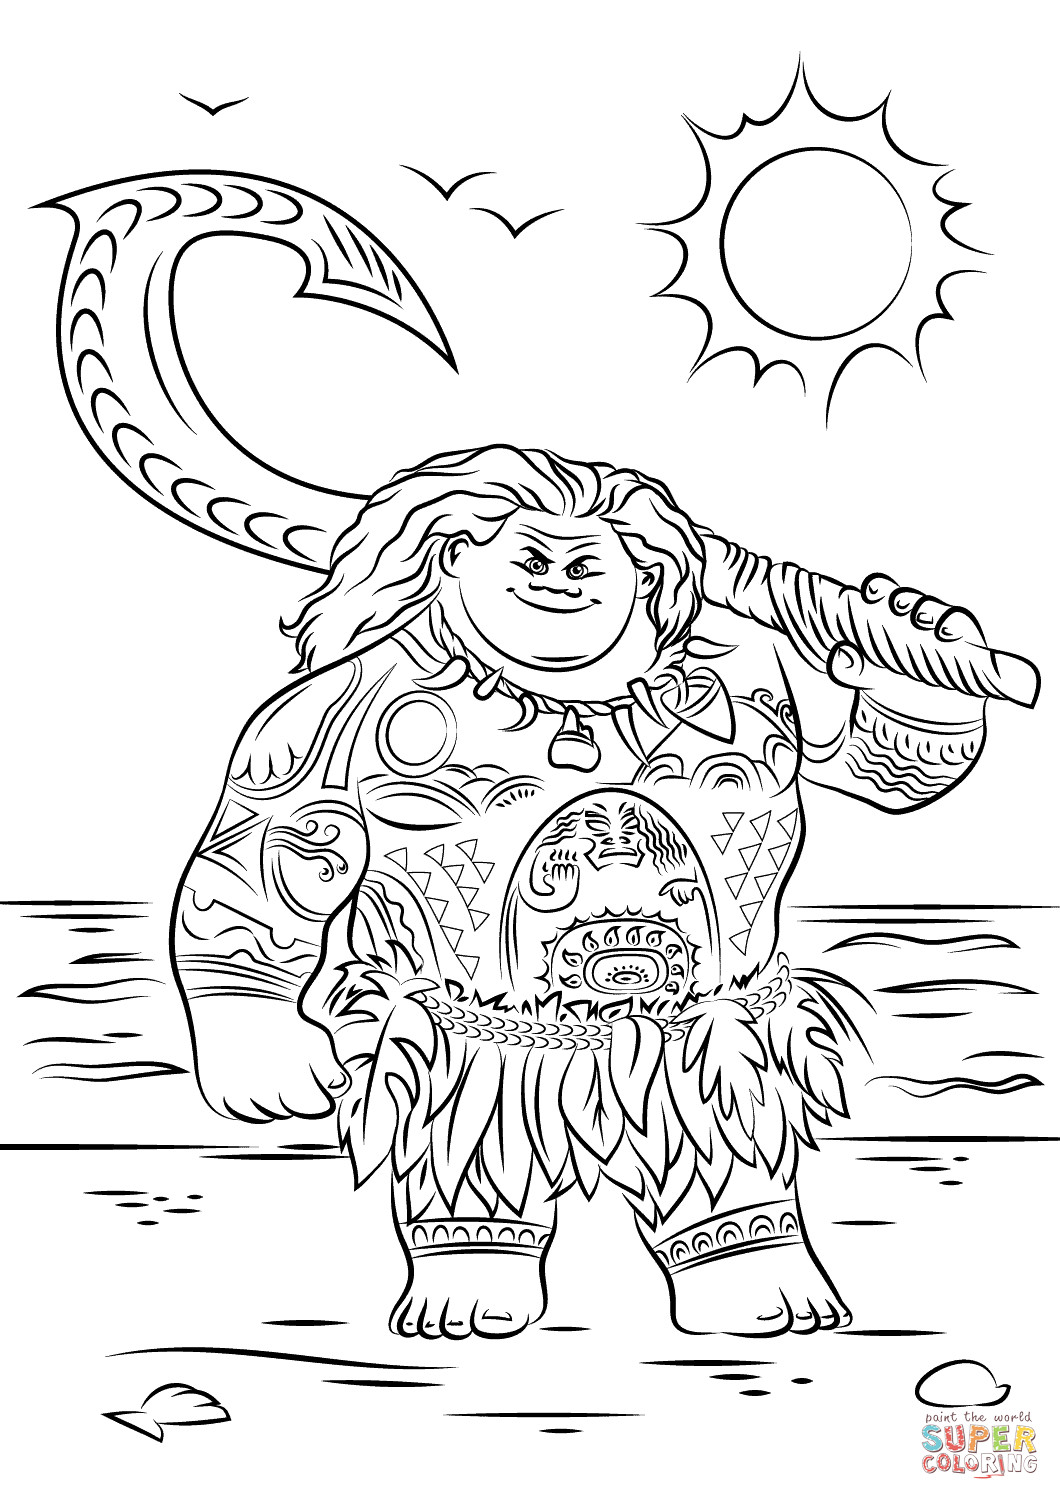 Best ideas about Moana Coloring Sheets For Girls . Save or Pin Moana Coloring Pages Coloring Home Now.